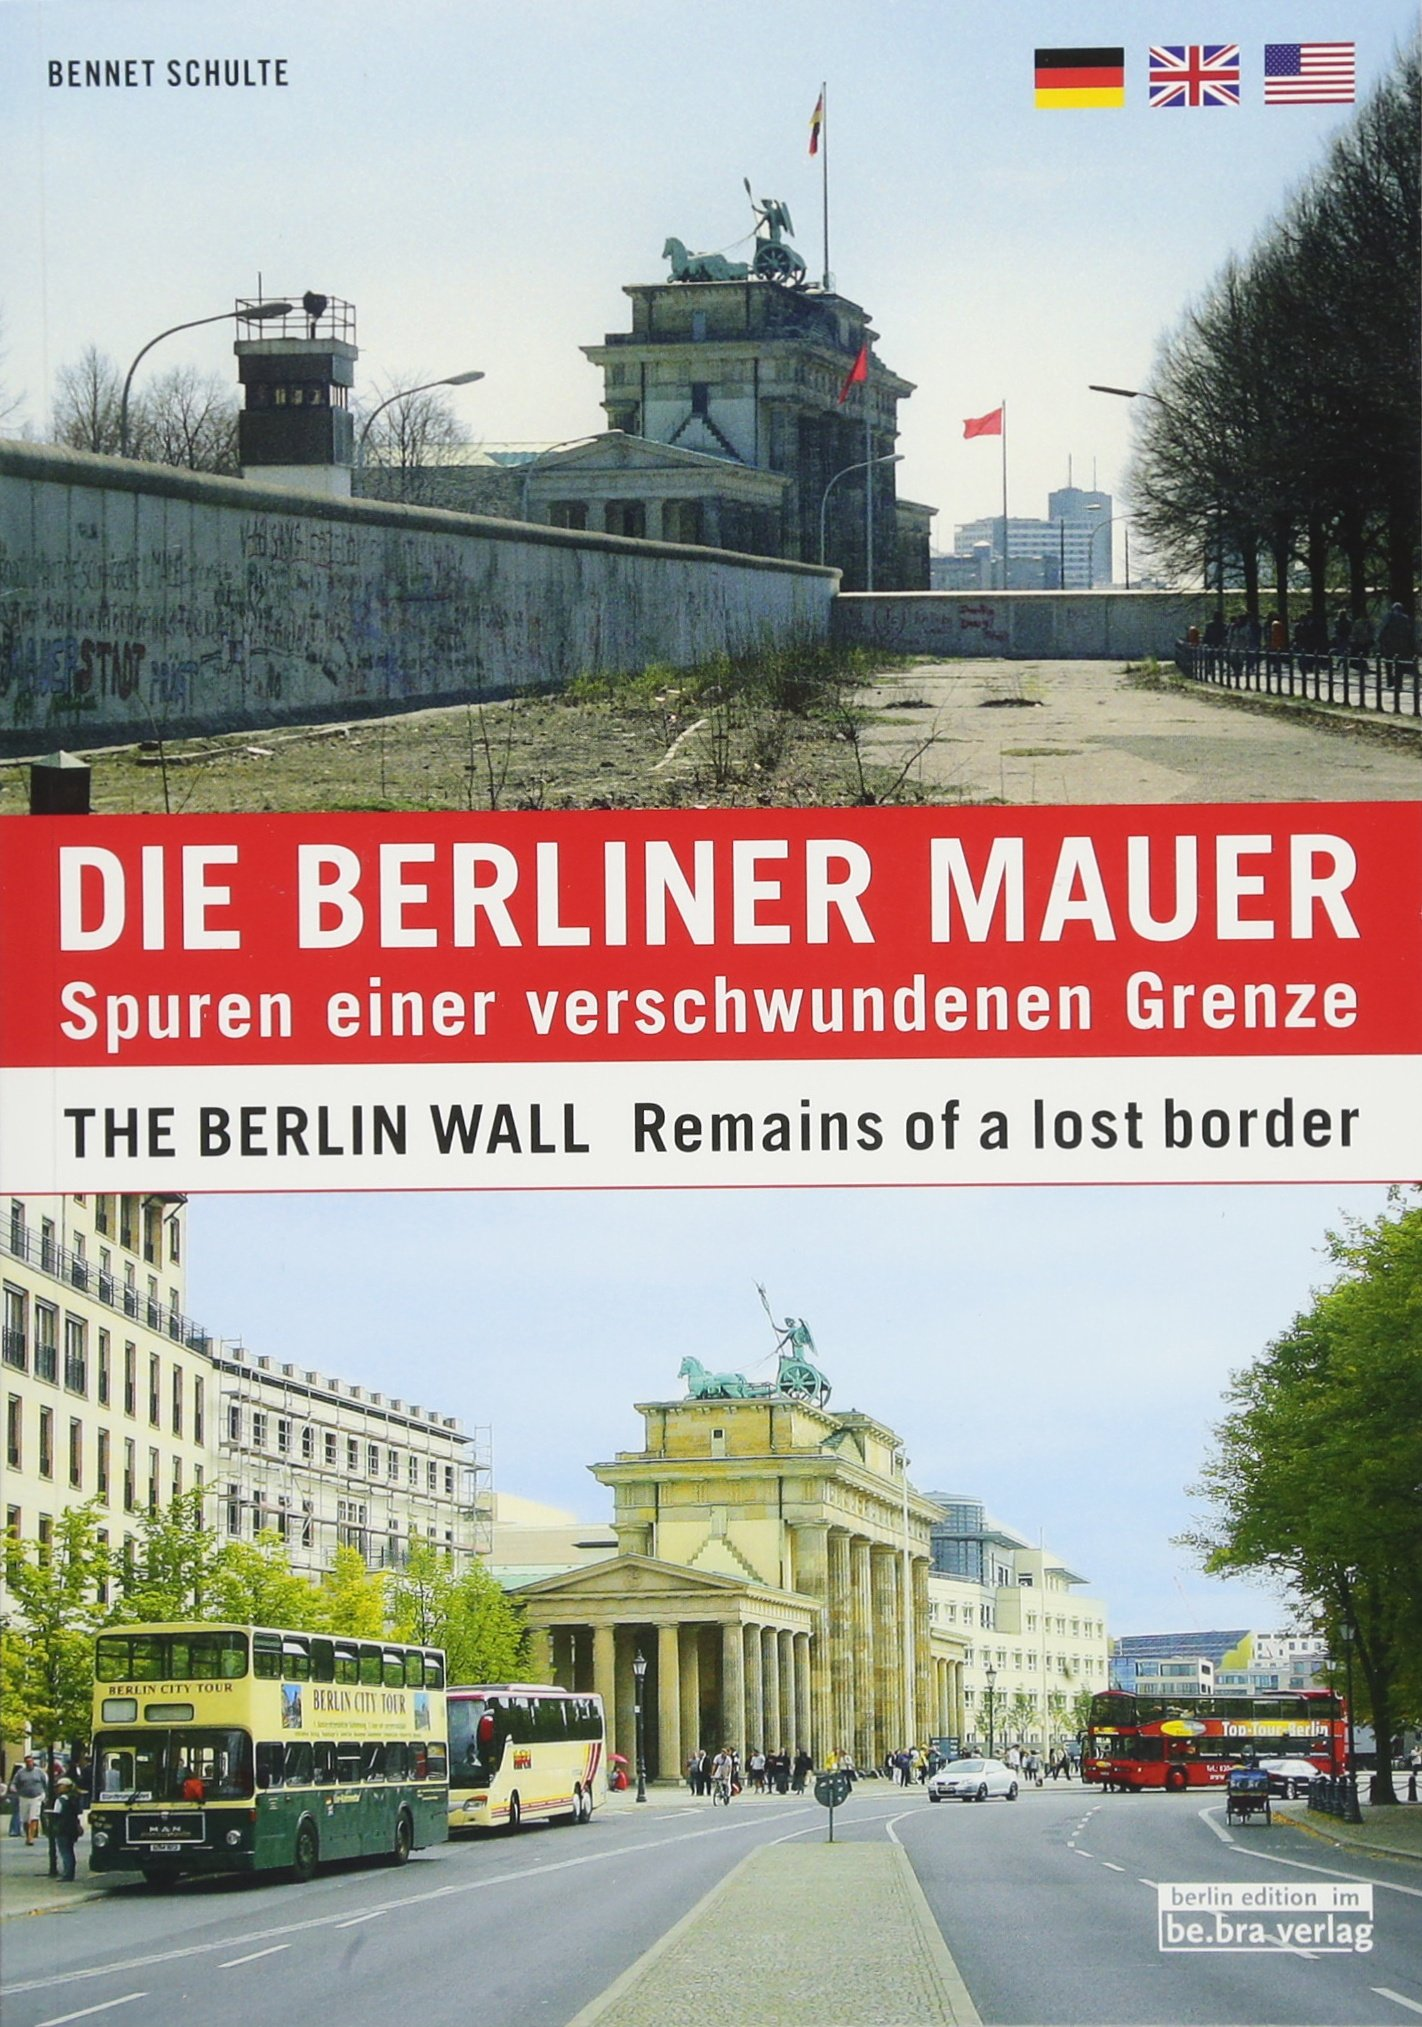 Die Berliner Mauer: Spuren einer verschwundenen Grenze / The Berlin Wall: Remains of a lost border